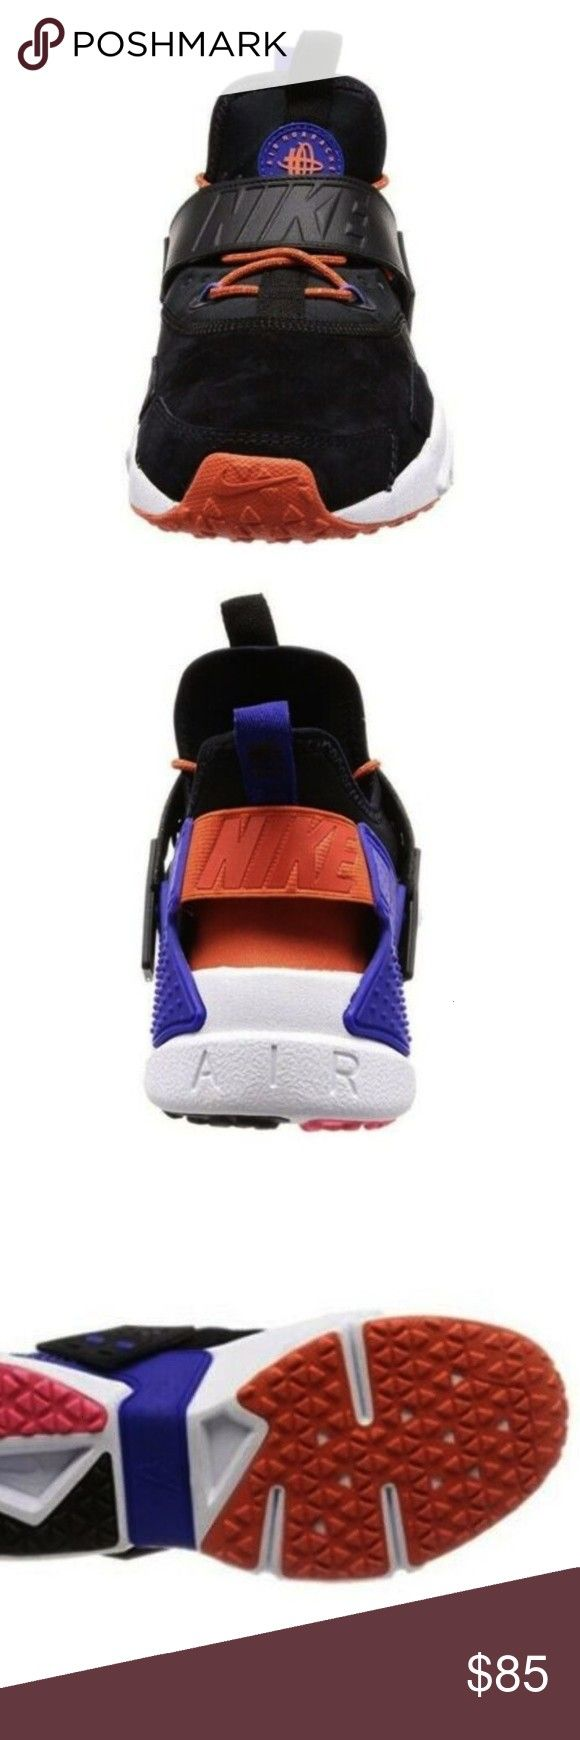 Blue Black Running Shoes AH7335 002 Size 105 Nike Mens Air Huarache Drift Nike Blue Black Running Shoes AH7335 002 Size 105 Nike Mens Air Huarache Drift Nike Blue Black R...